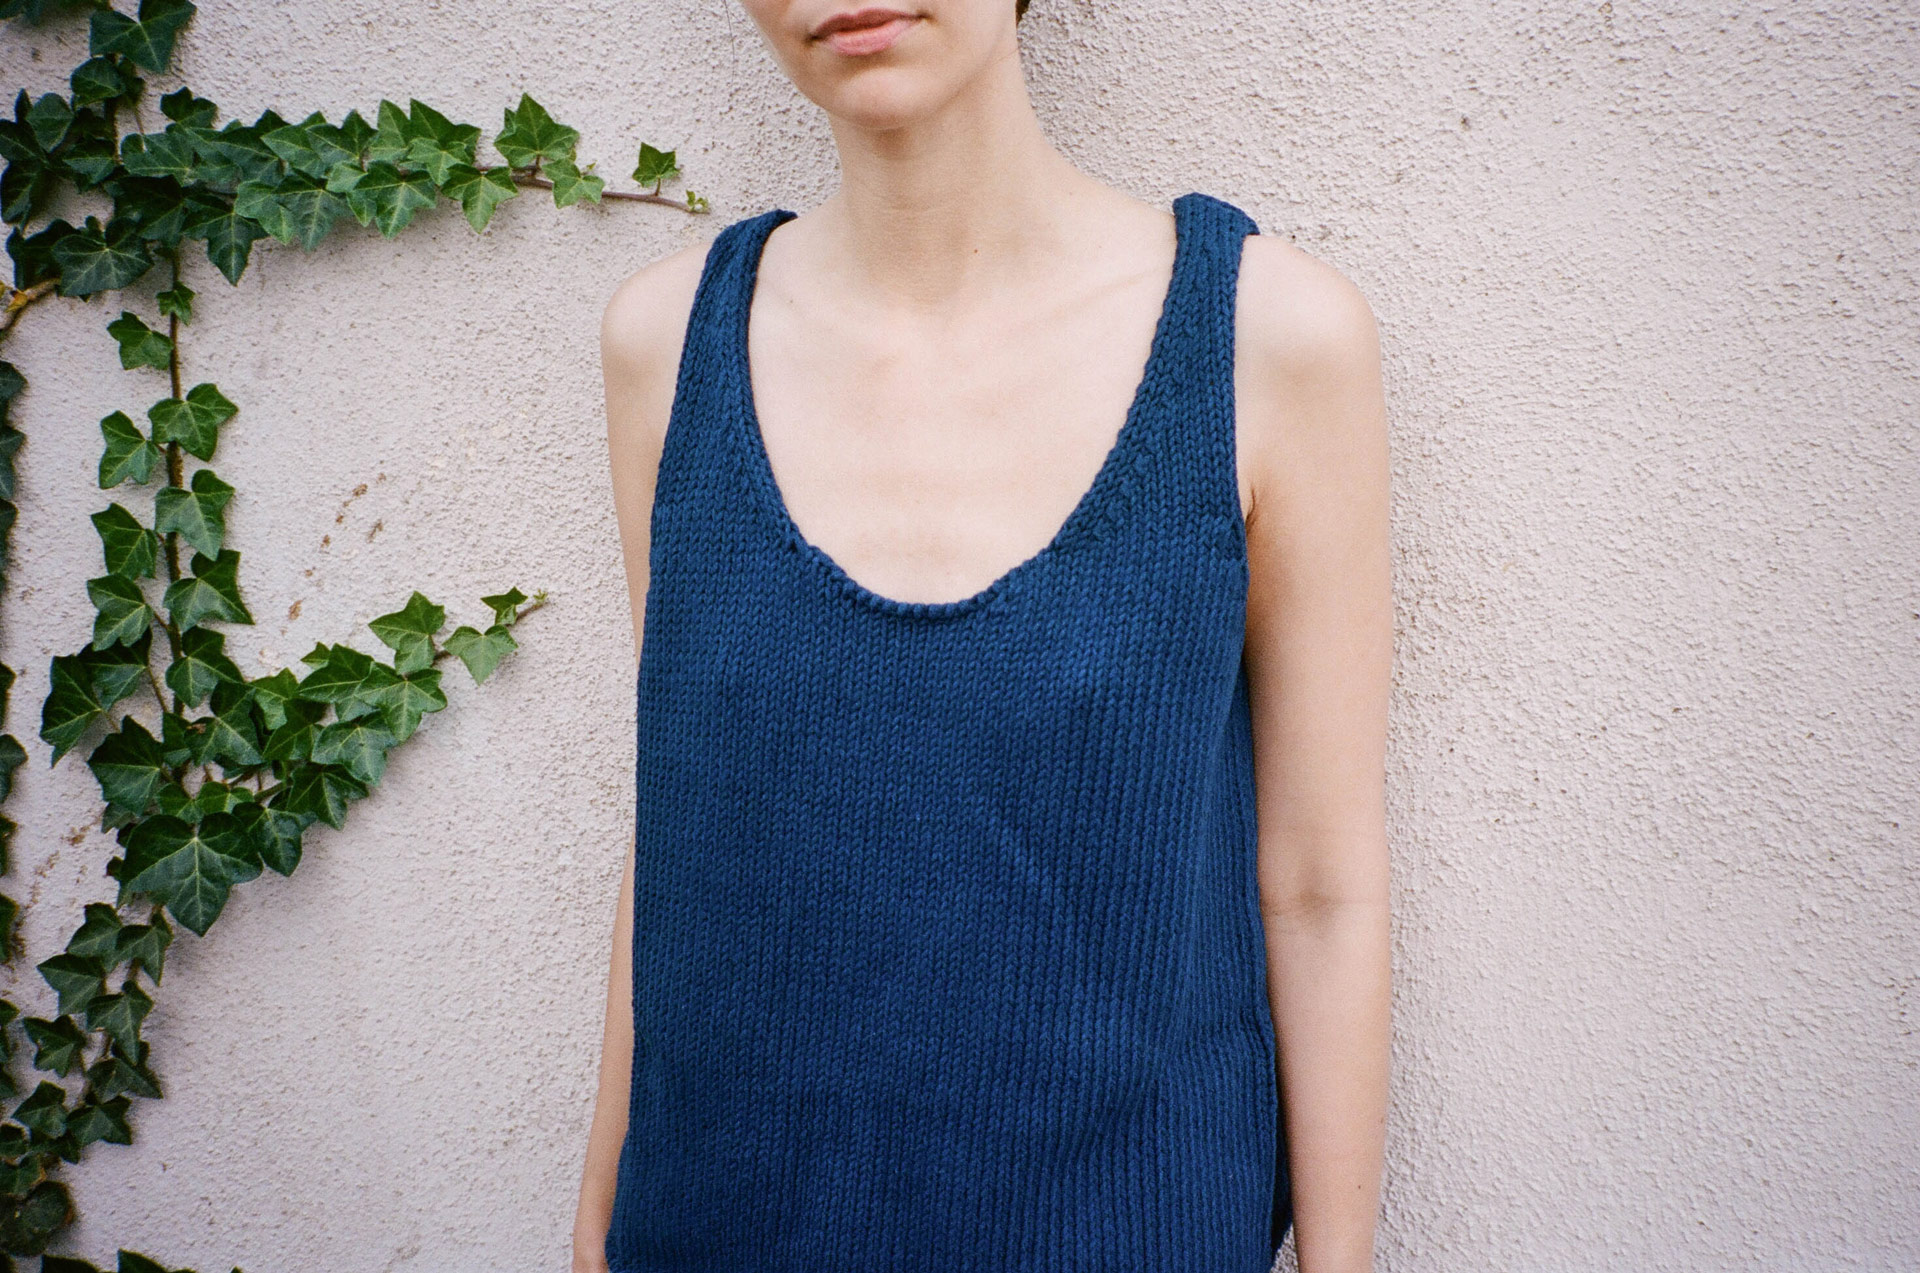 summer-knits-in-by-casissa-gallo-10